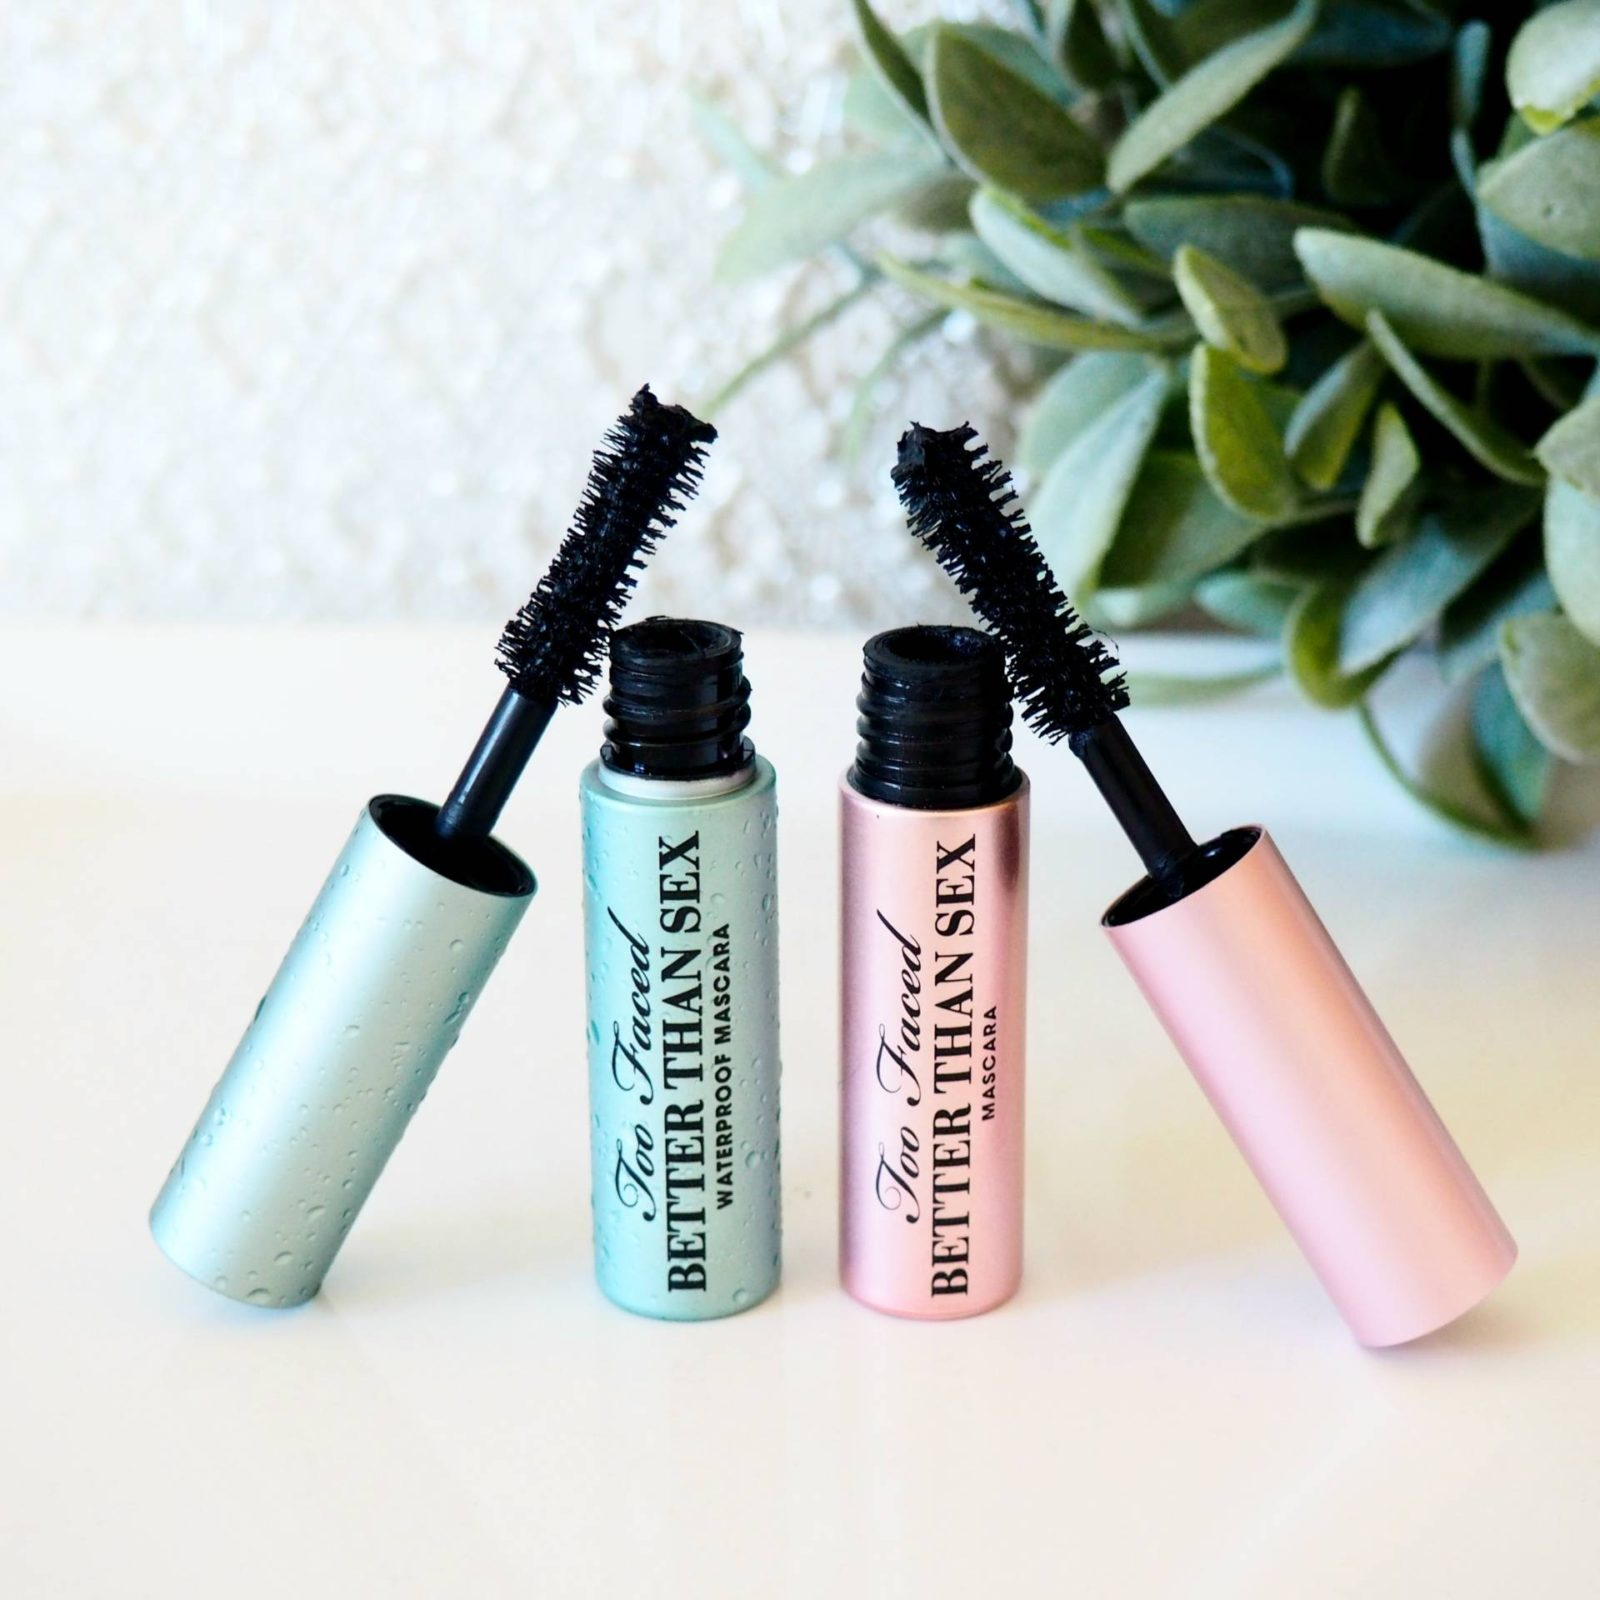 Too Faced Better Than Sex Mascara Waterproof Vs Original